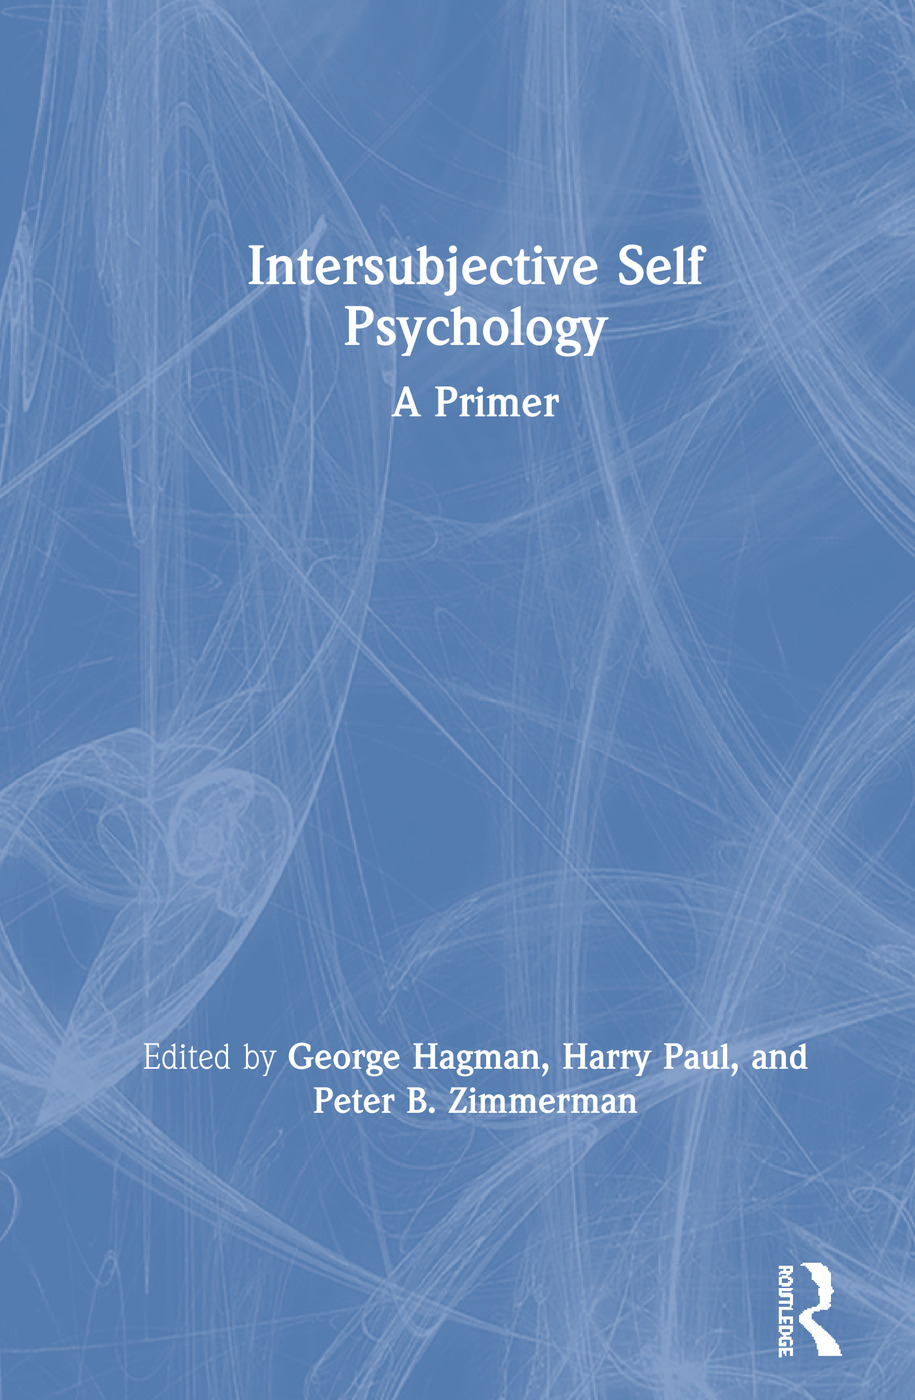 Intersubjective Self Psychology: A Primer book cover